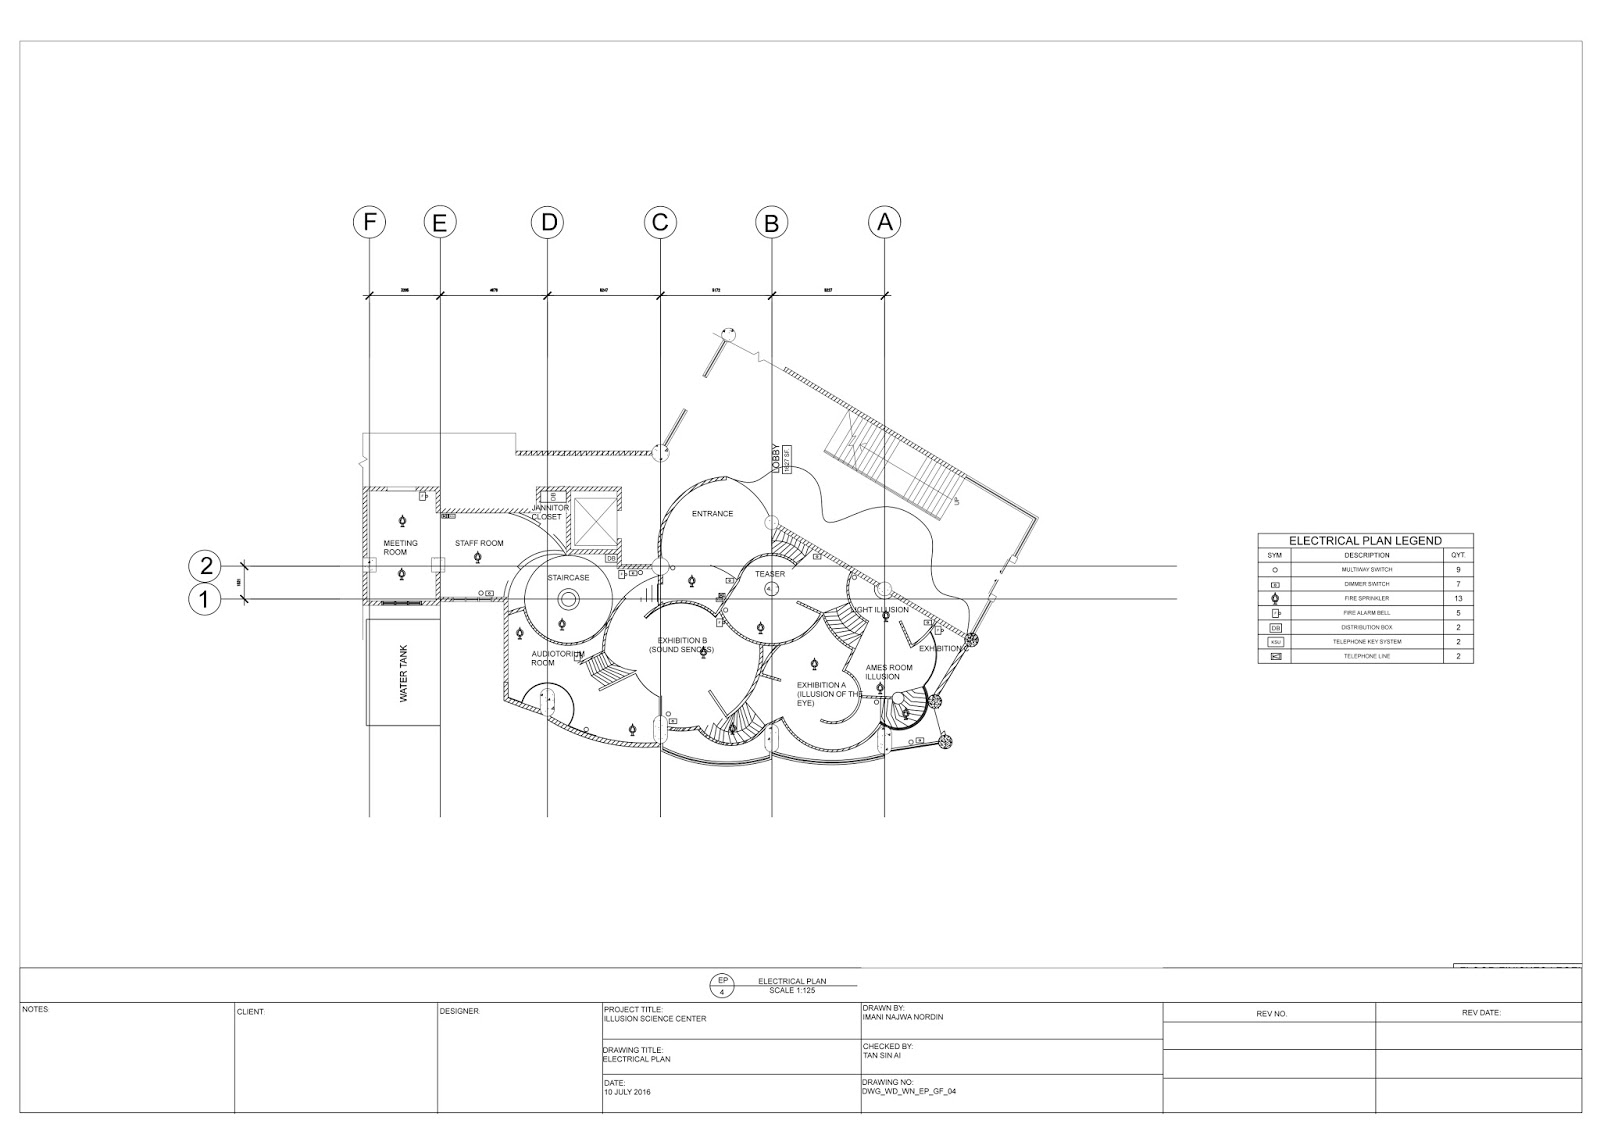 Imani Nordin 0319405 Detailing And Working Drawings Project 3 Legend Of Electrical Plan Ceiling